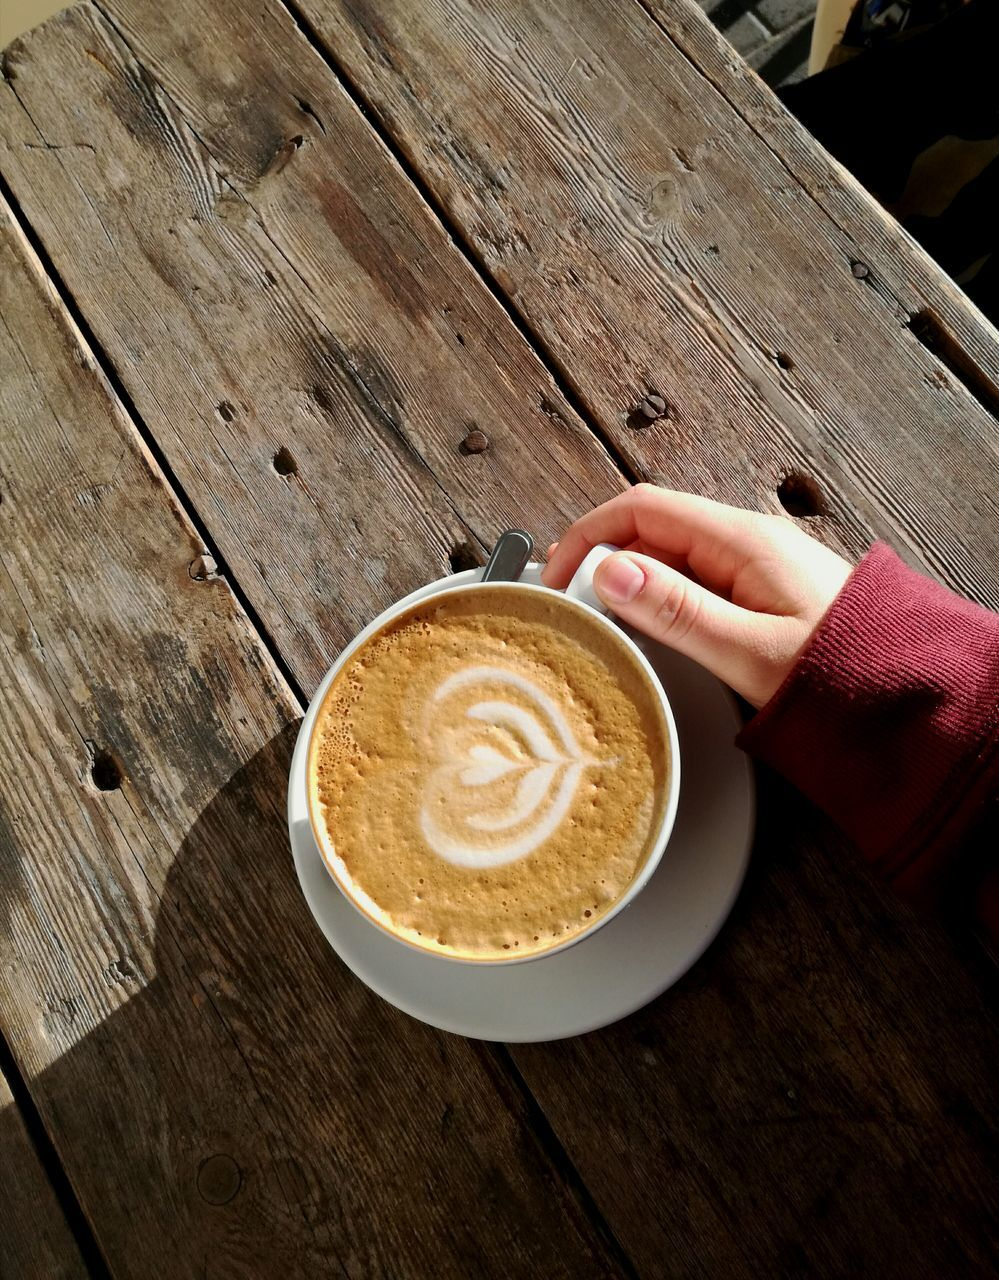 coffee - drink, human hand, coffee cup, drink, food and drink, refreshment, frothy drink, human body part, one person, table, froth art, real people, cappuccino, latte, holding, wood - material, cafe, indoors, saucer, freshness, lifestyles, close-up, women, day, mocha, people